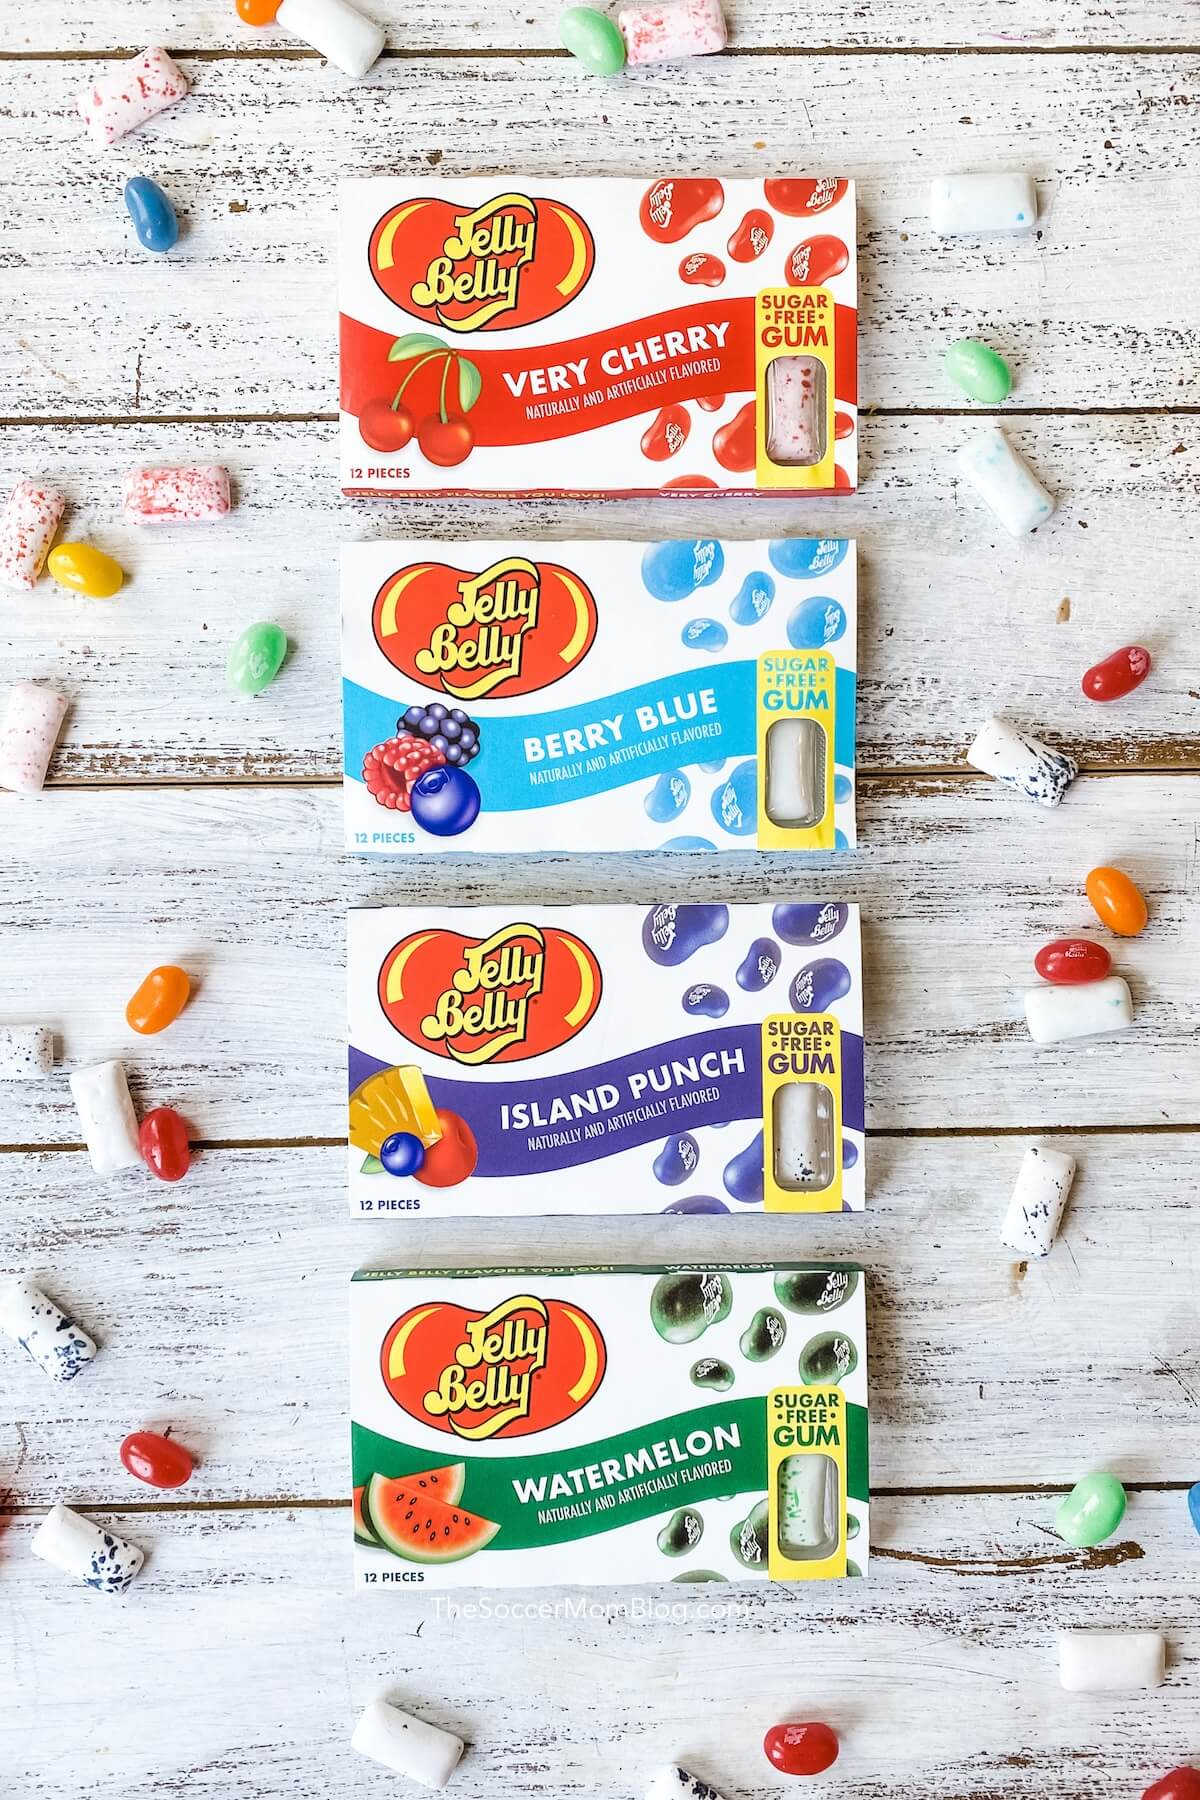 Jelly Belly gum flavors